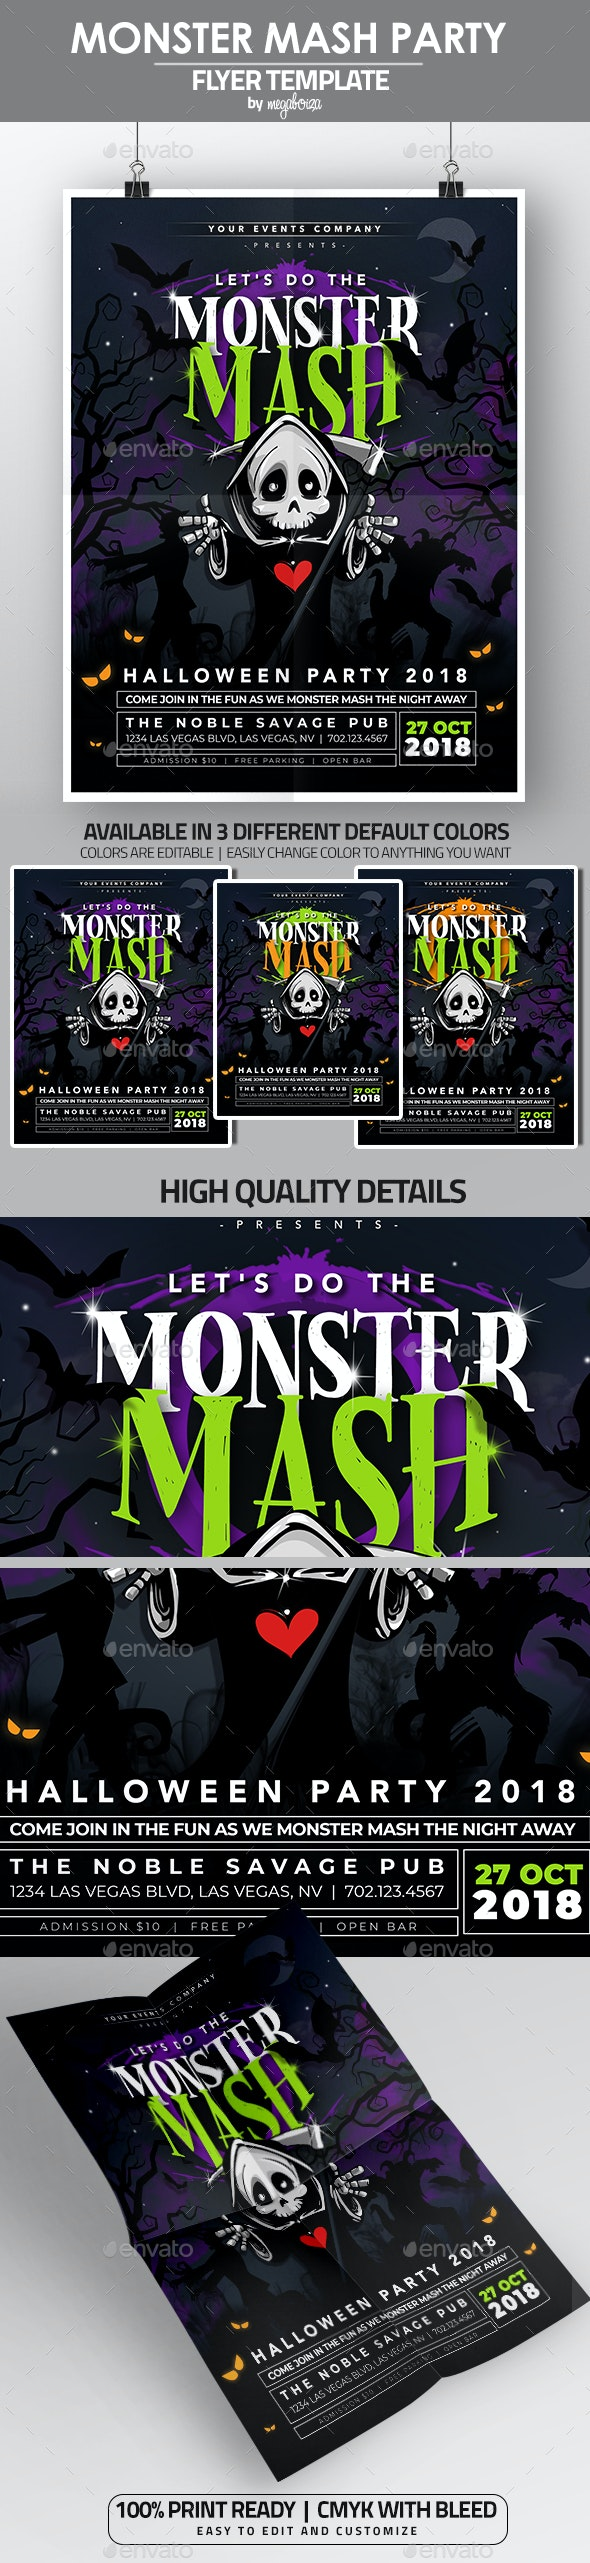 Monster Mash Halloween Party Flyer/Poster - Flyers Print Templates